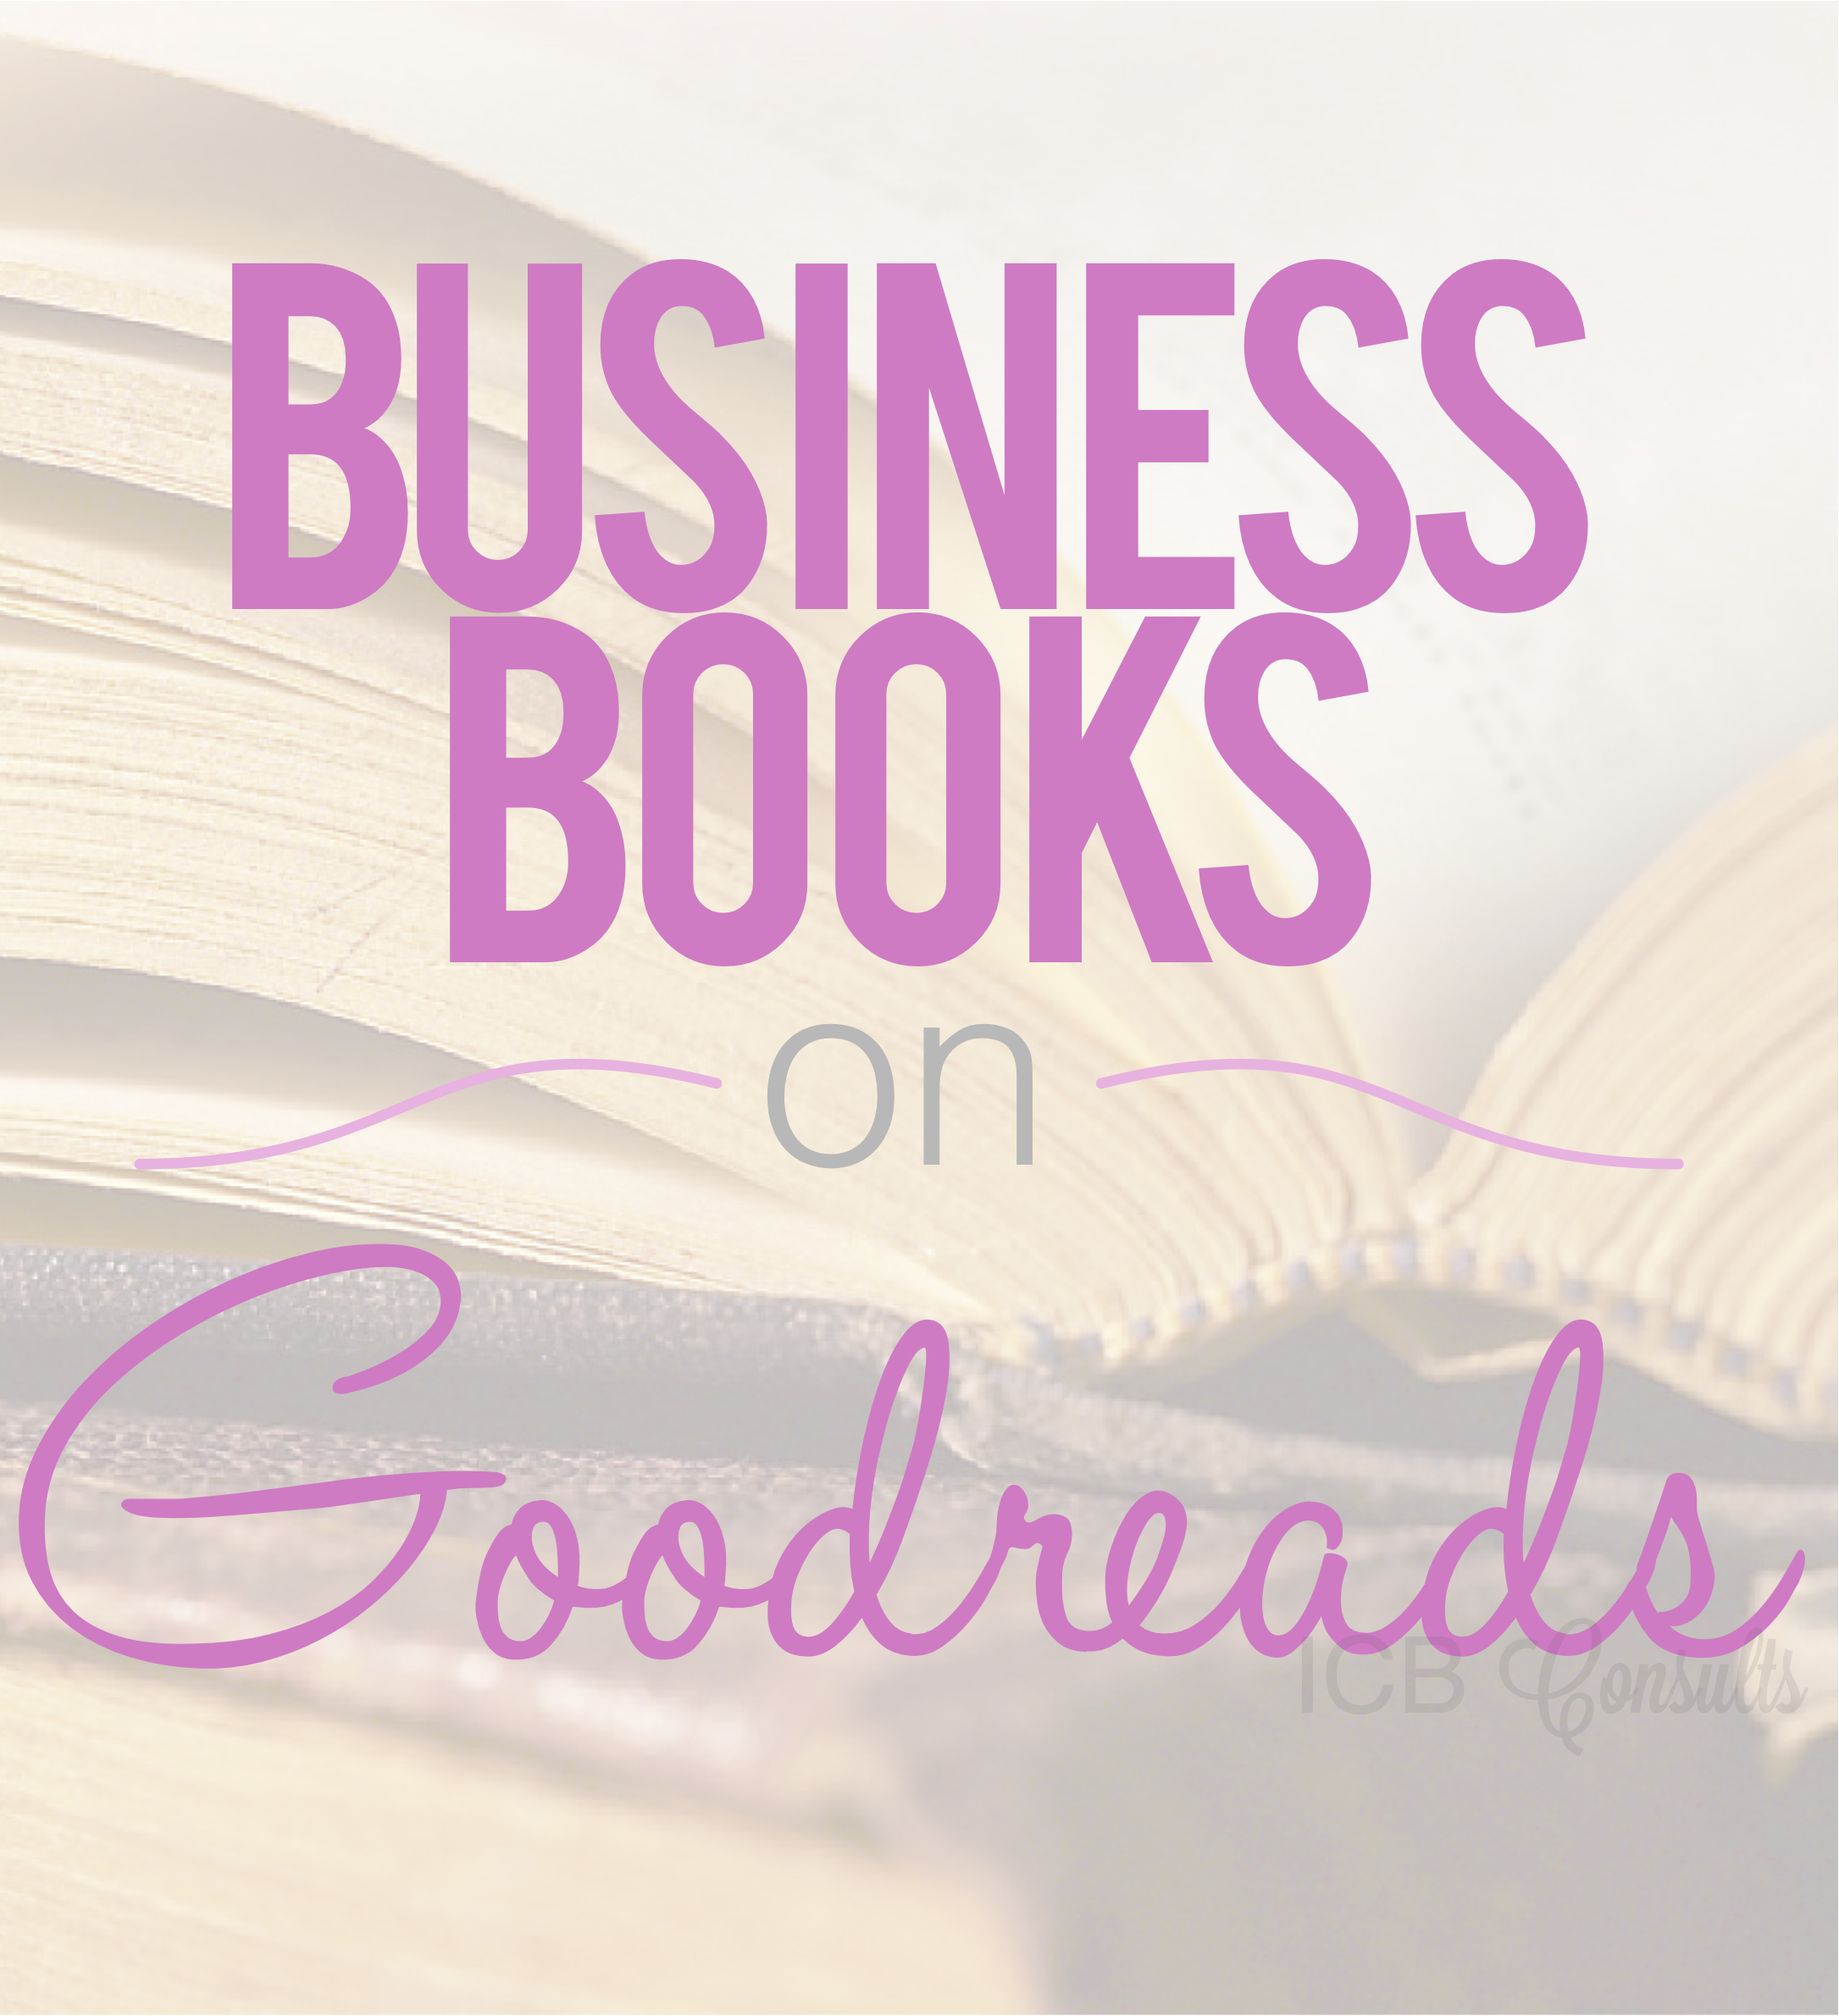 Business Books On Goodreads